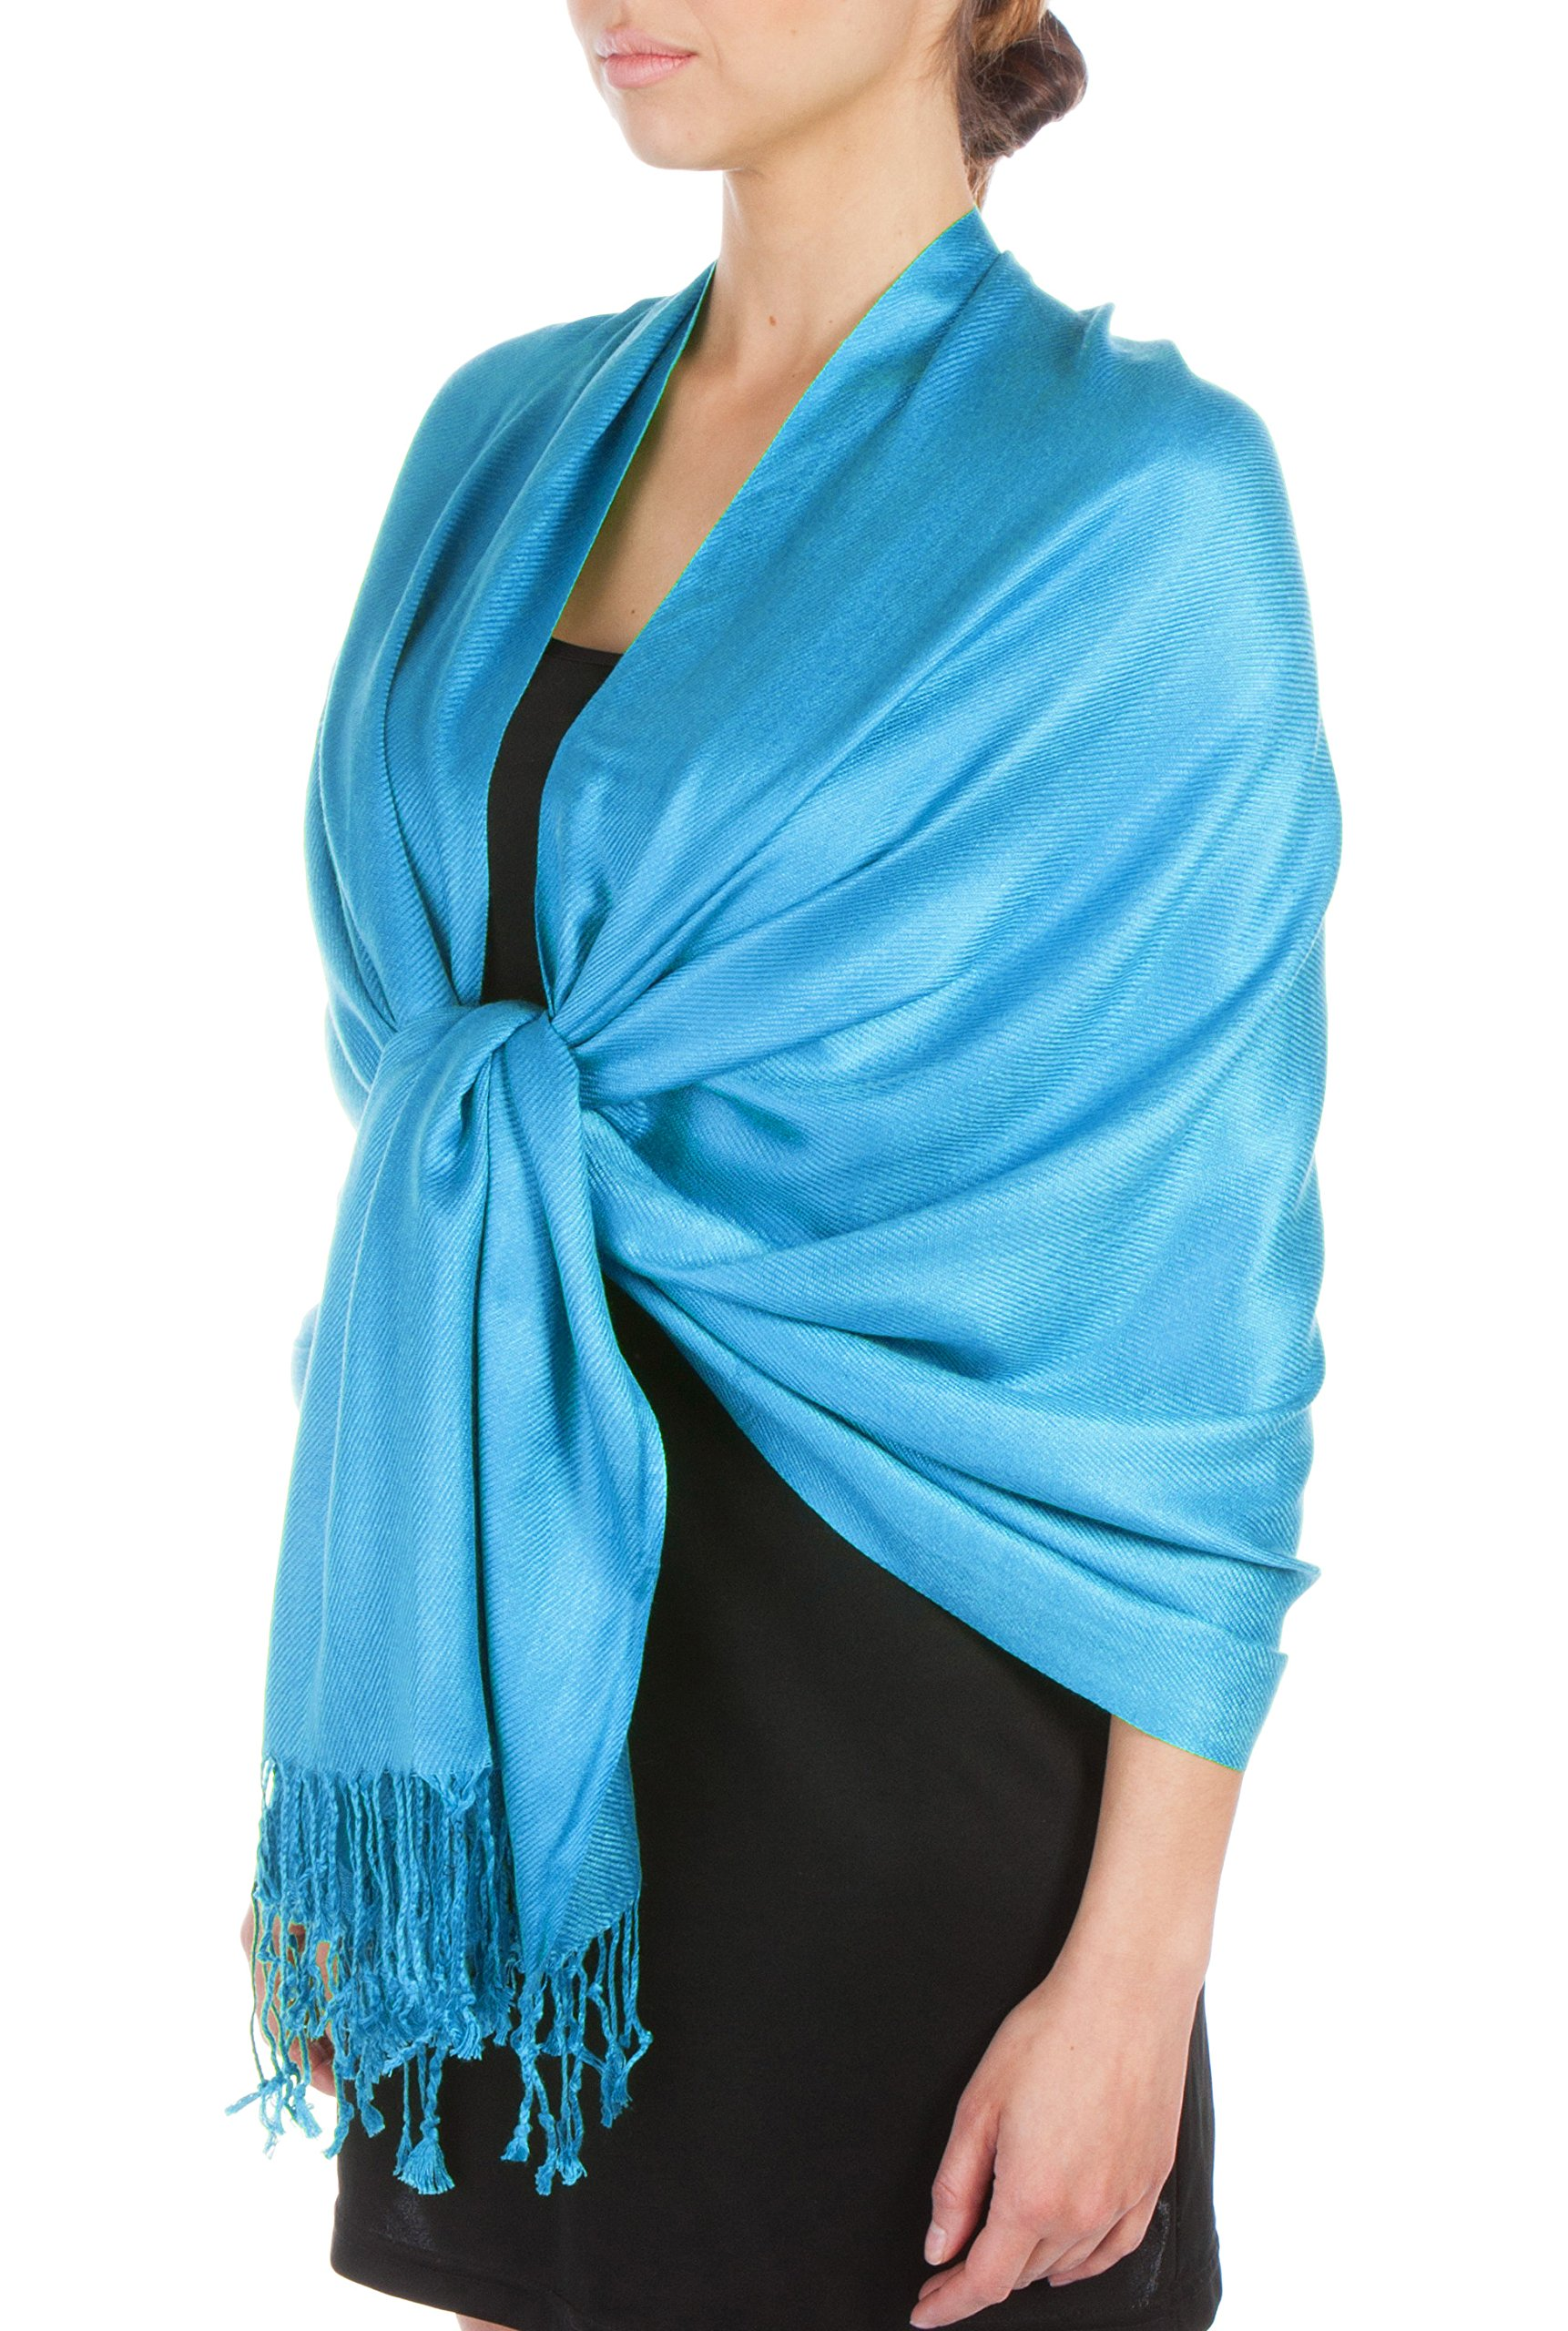 Sakkas Large Soft Silky Pashmina Shawl Wrap Scarf Stole in Solid Colors - Turquoise